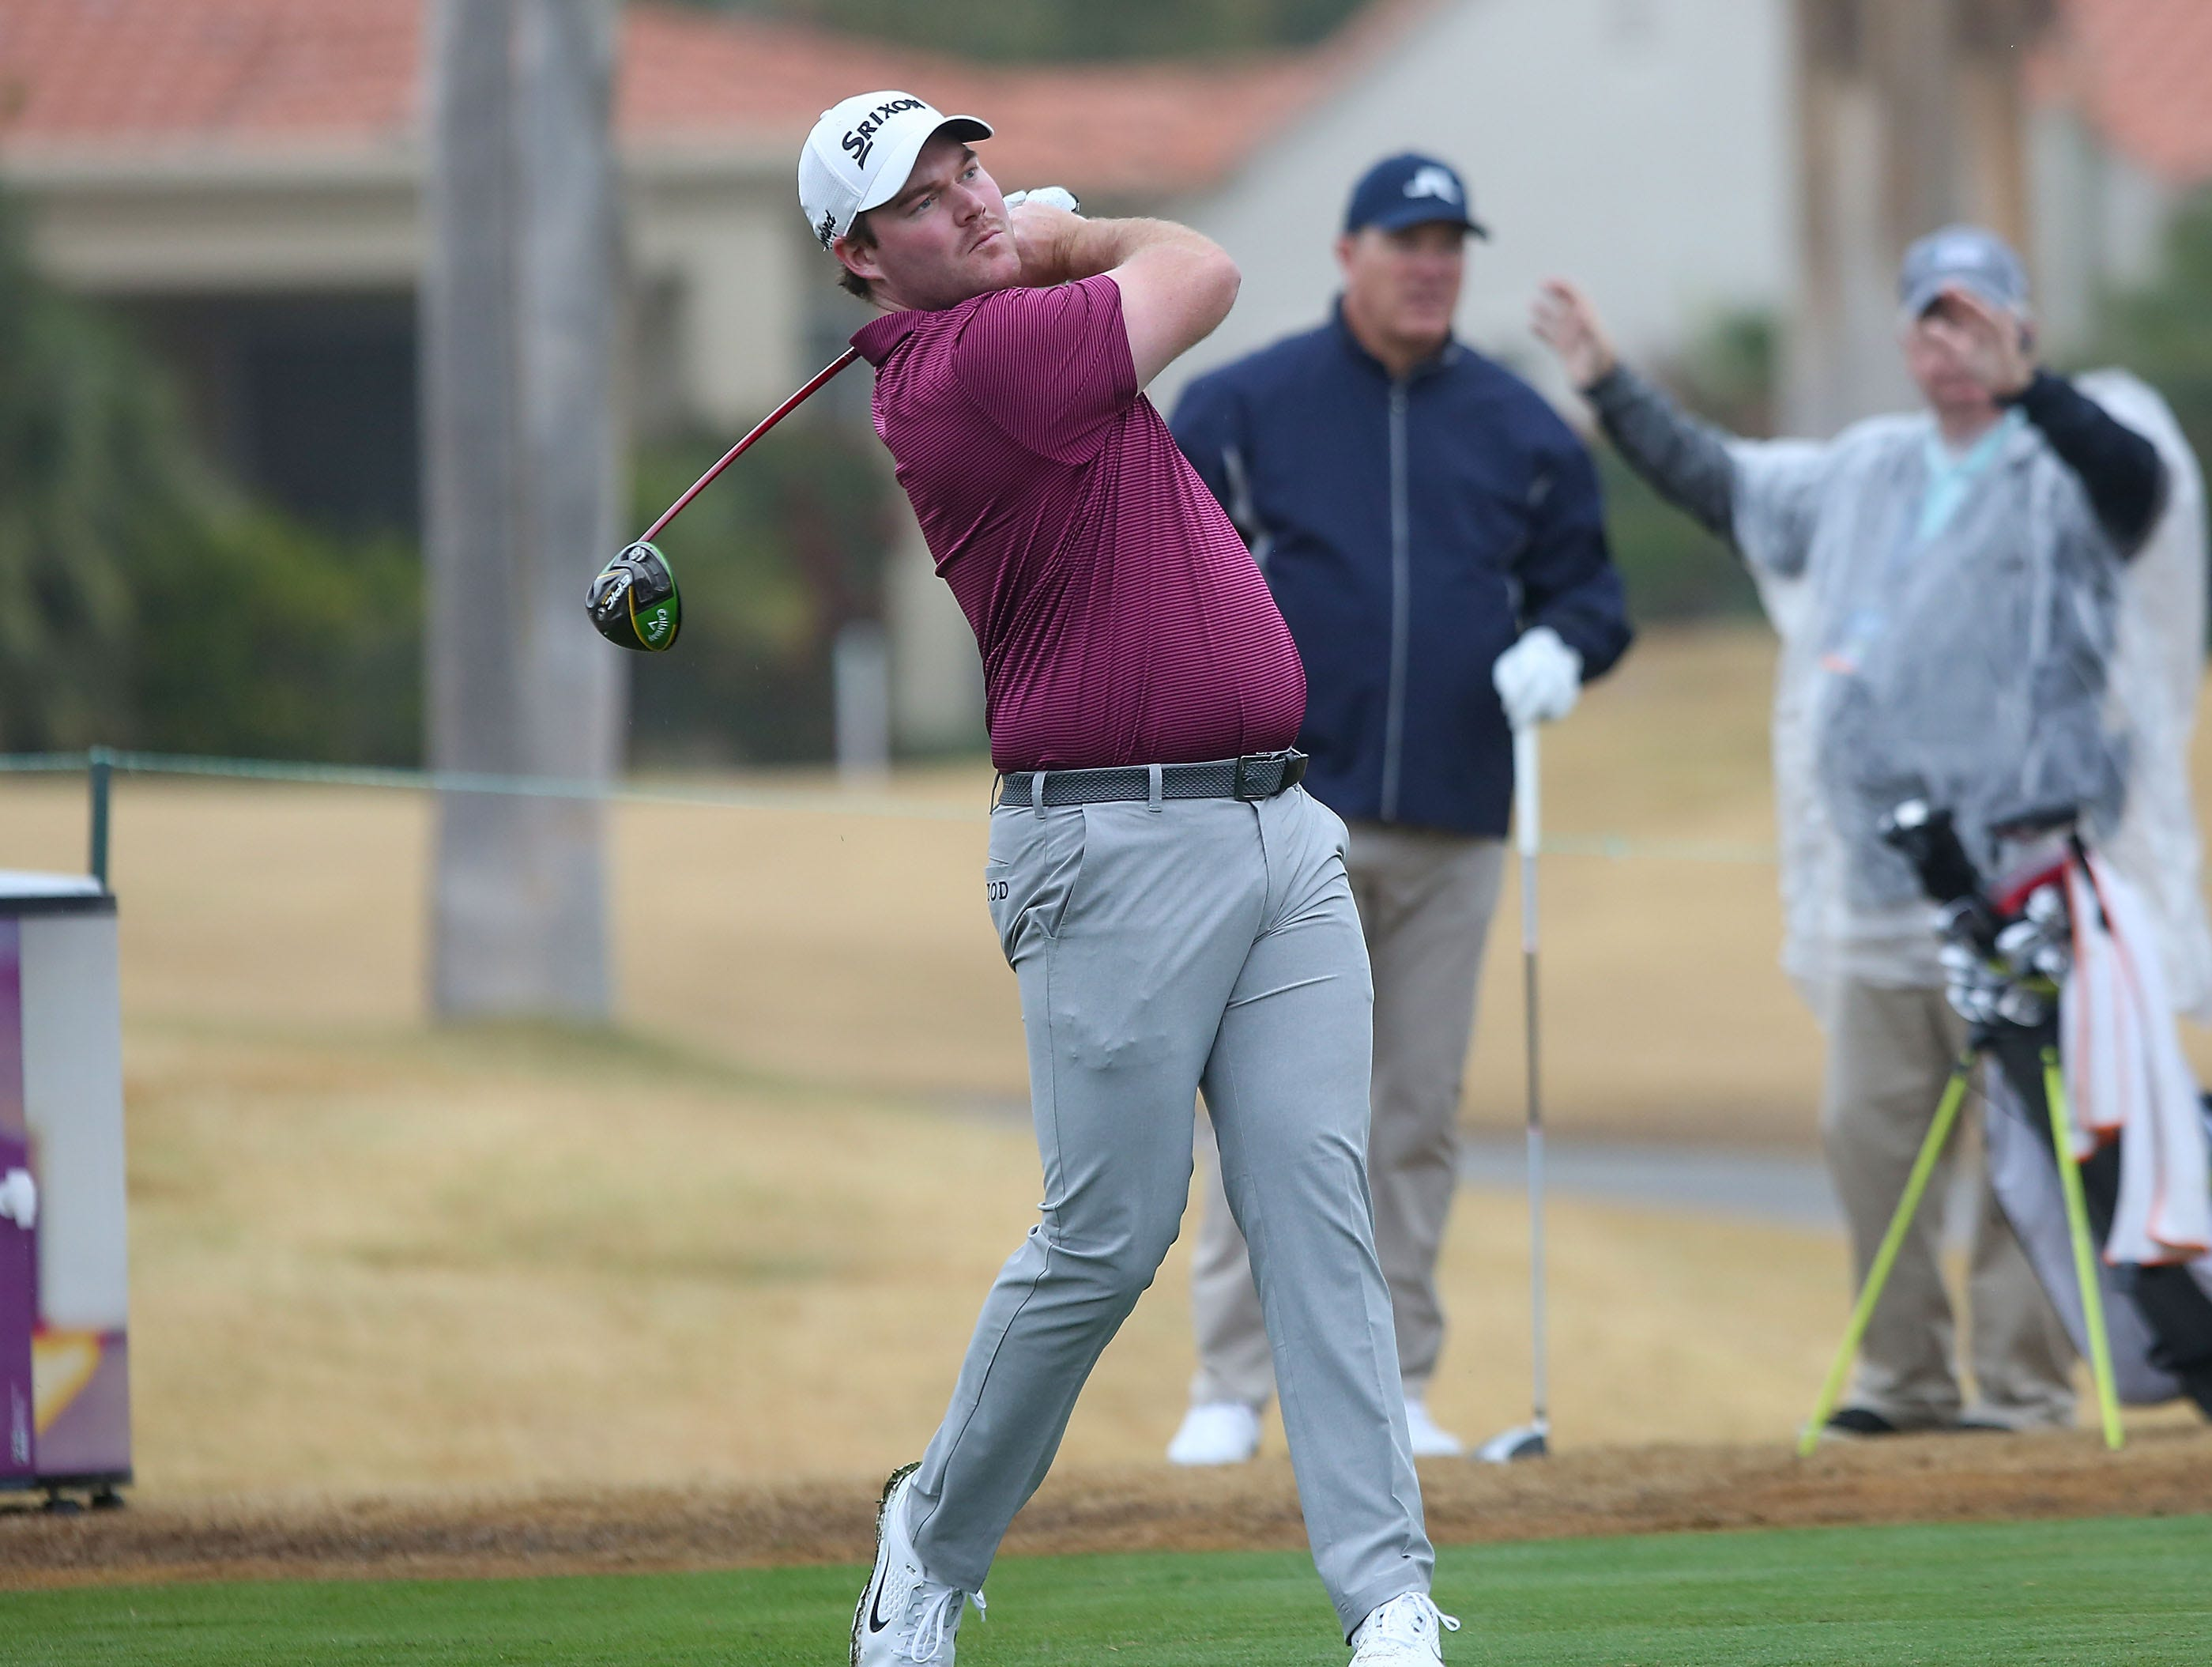 Grayson Murray tees off on the seventh hole of the Nicklaus Tournament Course at PGA West, January 17, 2019.